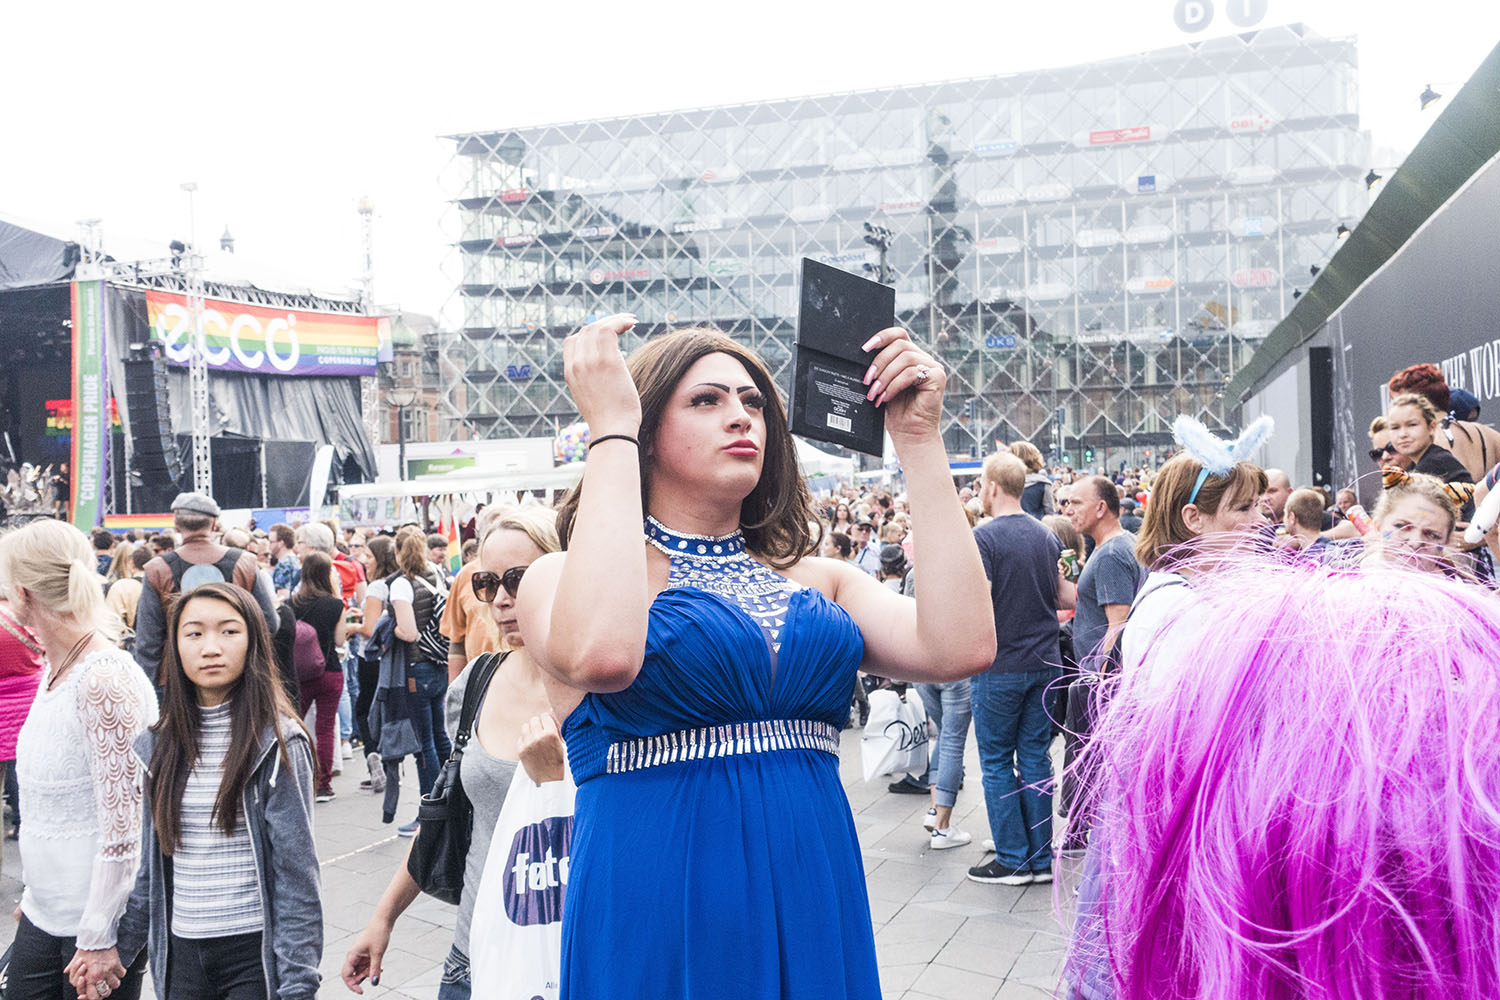 CphPride2016_HelenaLundquist_blog_39